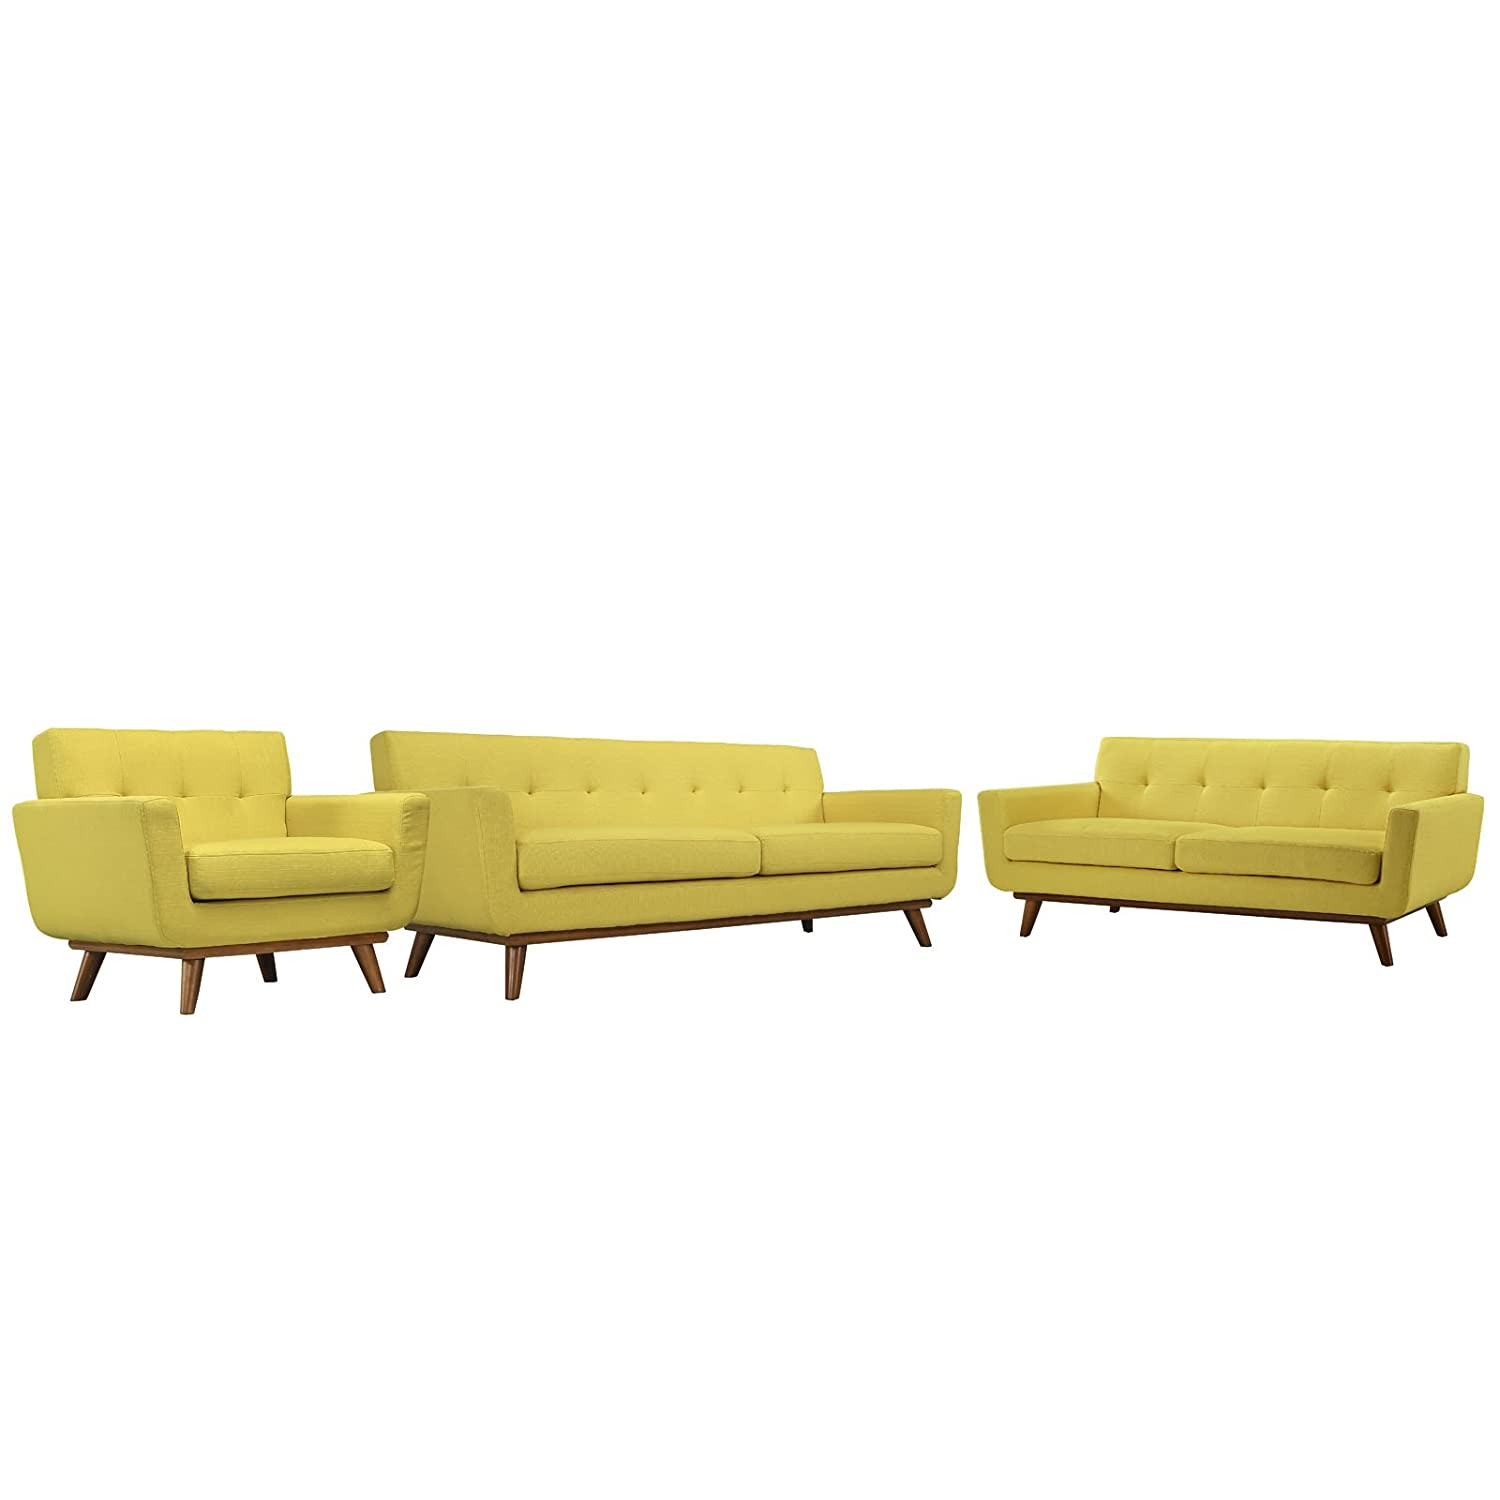 Modern Contemporary Sofa Loveseat and Armchair (set of three) - Yellow Fabric